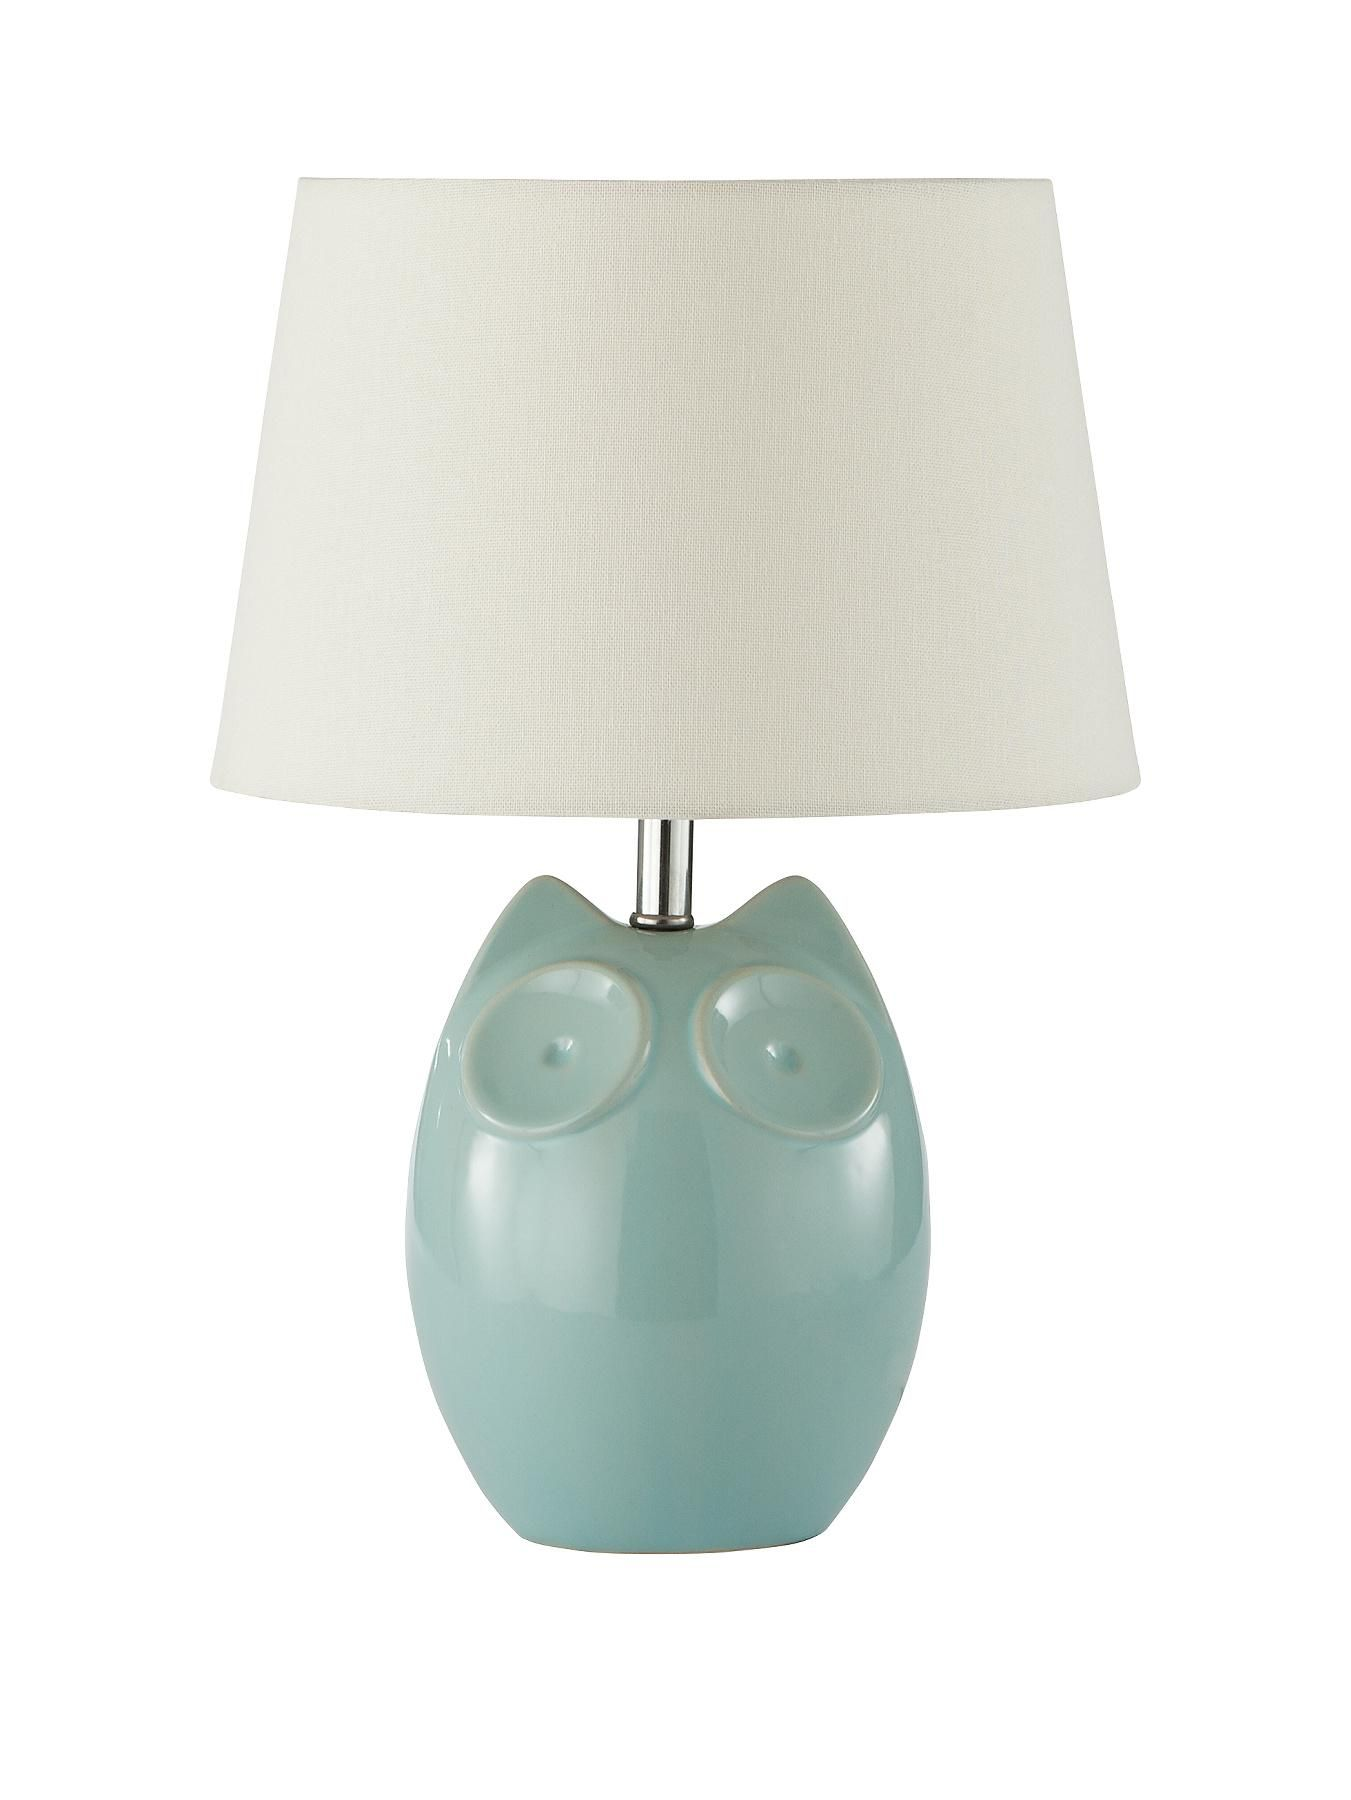 Hector owl ceramic table lampilluminate a table or sideboard with hector owl ceramic table lampilluminate a table or sideboard with the quirky character of this hector lamp the owl shaped ceramic base comes in a choice of aloadofball Image collections